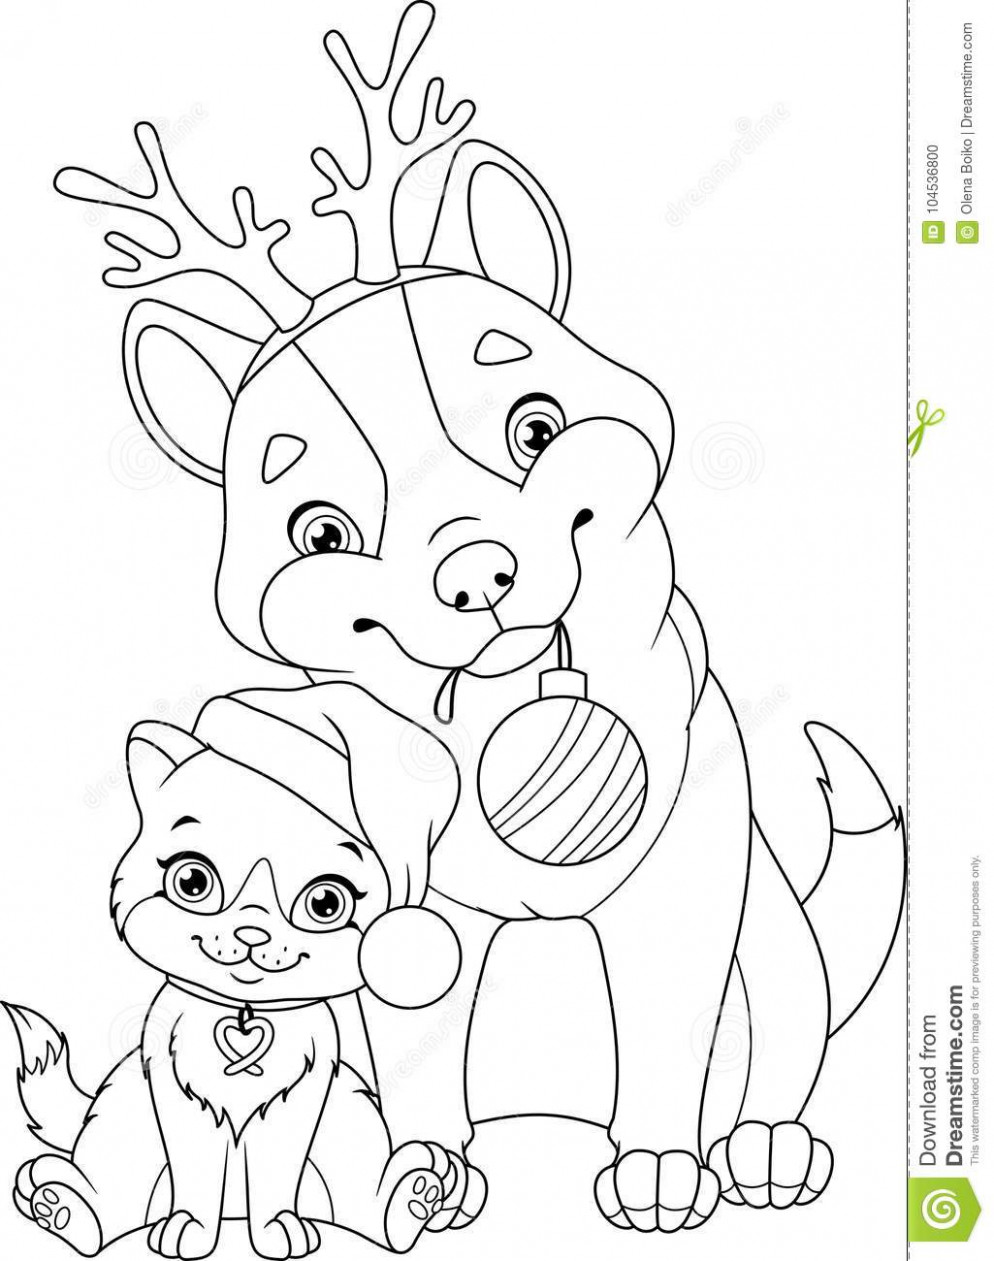 Christmas Dog With Cat Coloring Page Stock Vector – Illustration of ..